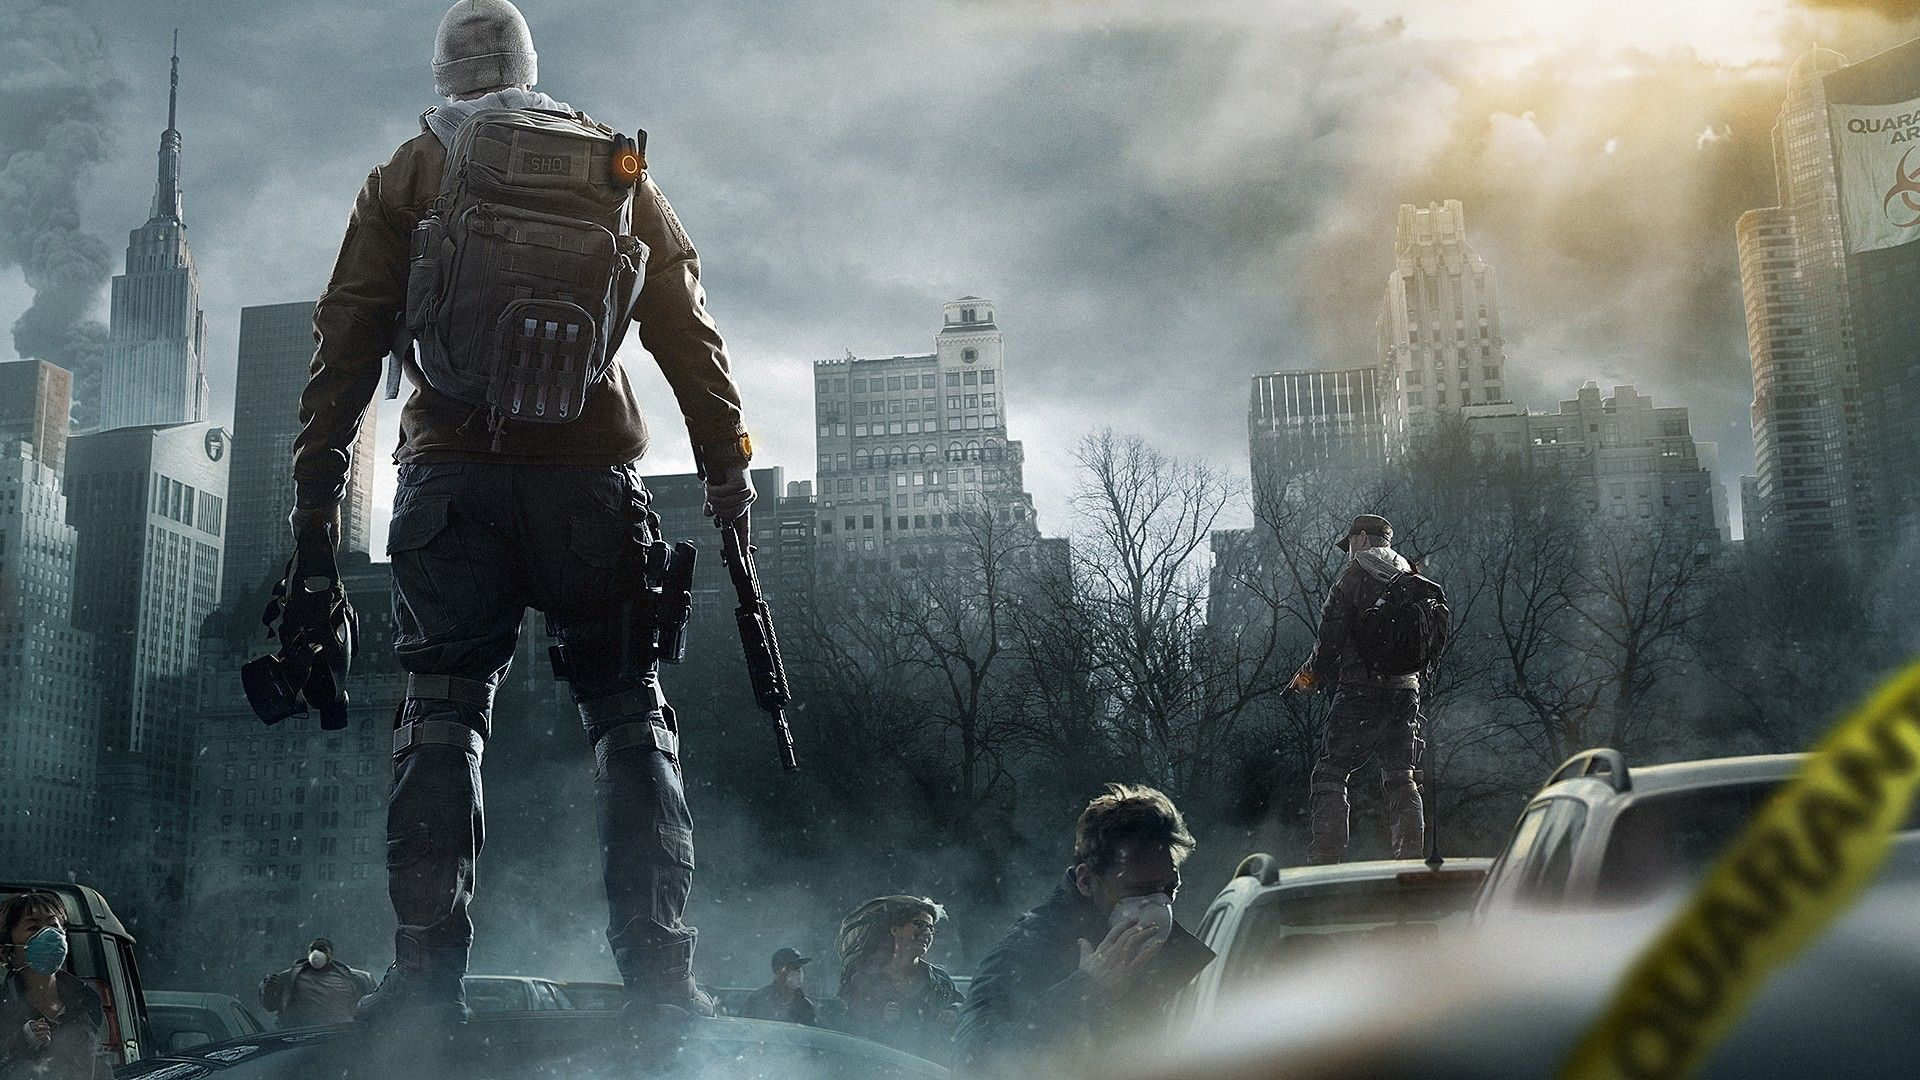 High Def Gaming Backgrounds For Your Computer Desktop Tom Clancy The Division The Division Ps4 Tom Clancy